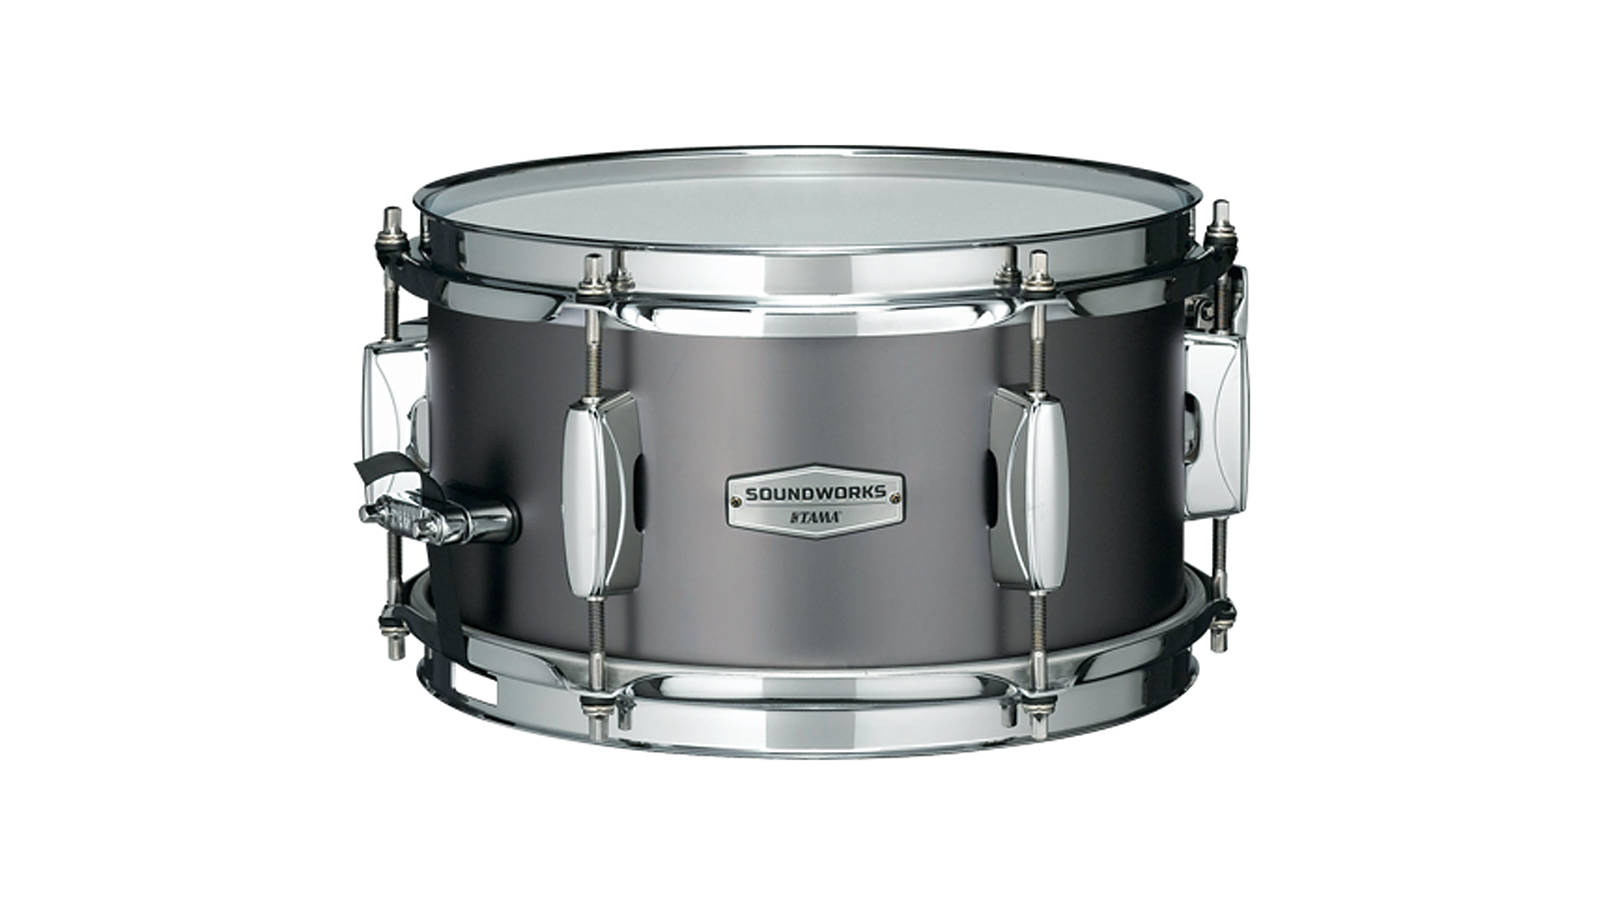 Tama DST1055M Soundworks Steel Snare 10x5,5